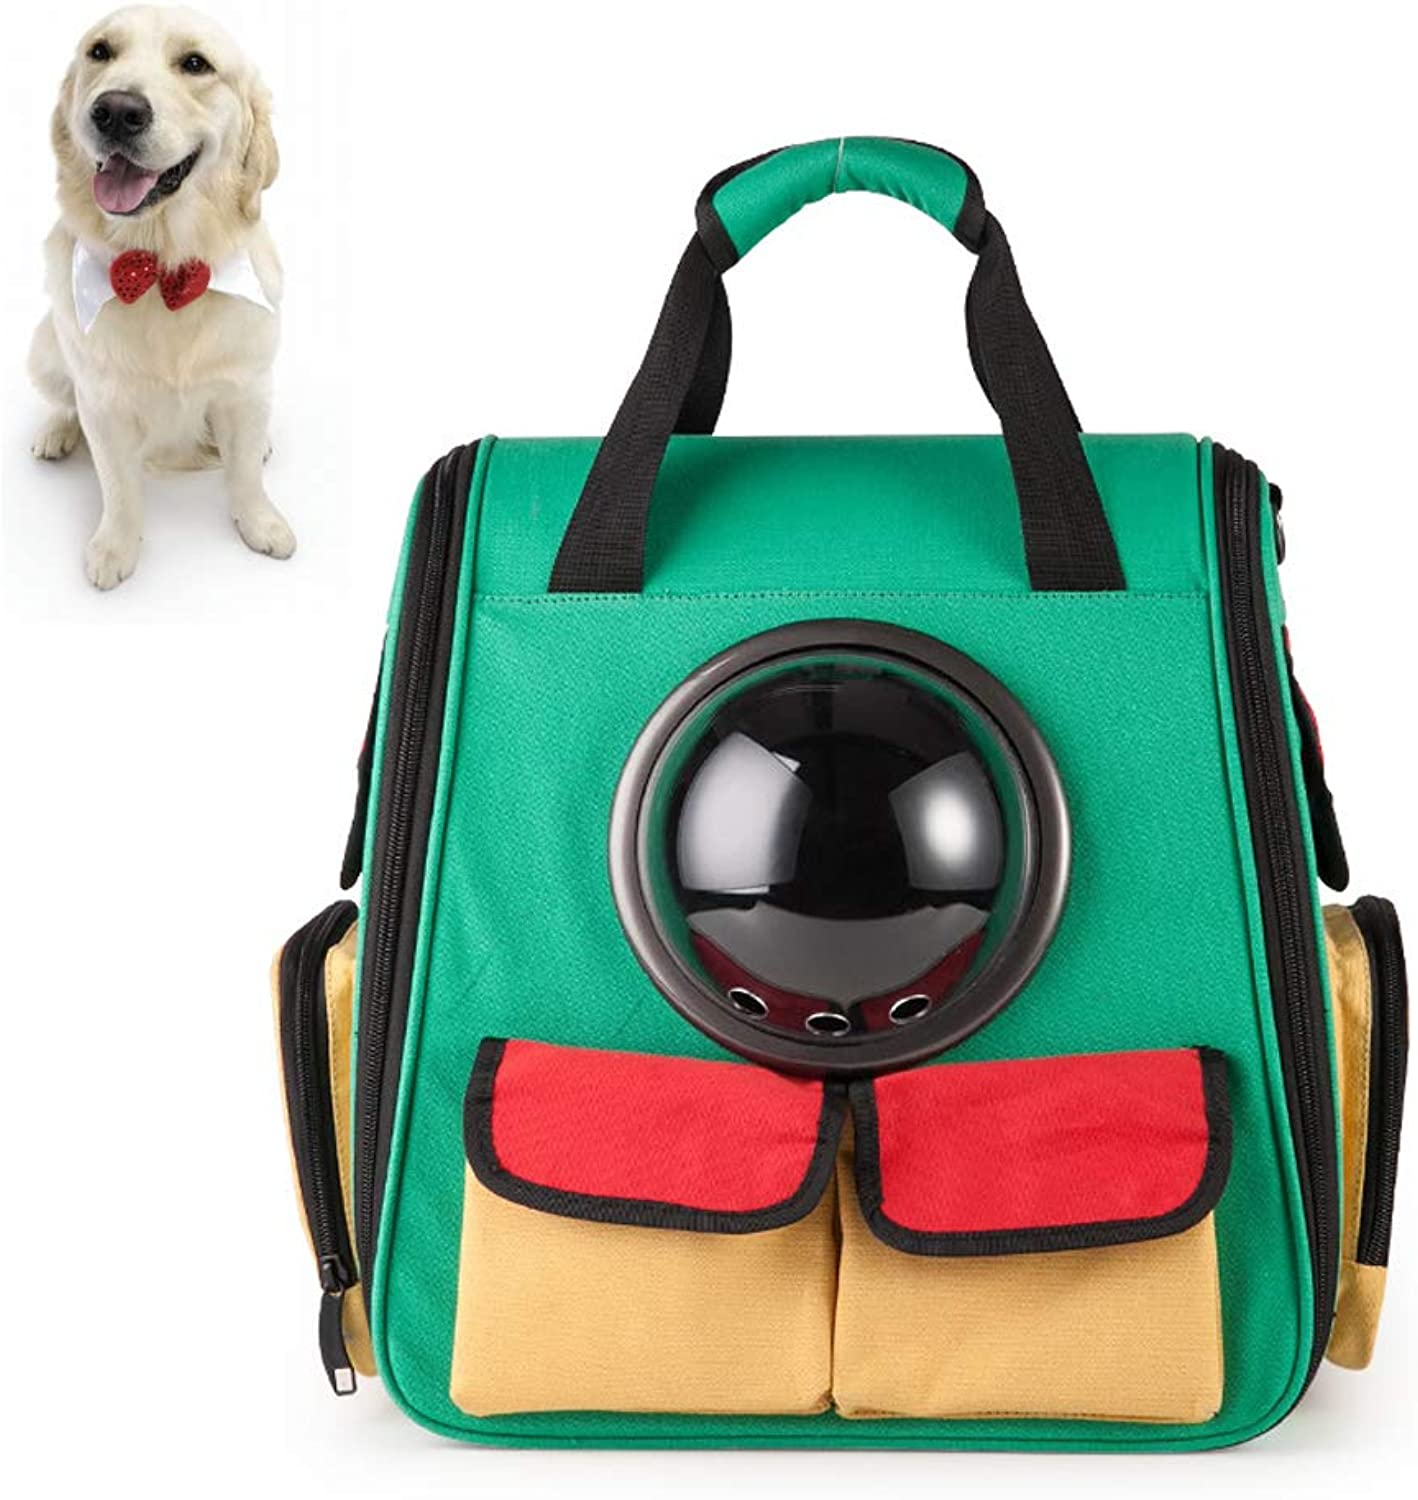 ACLBB Pet travel backpack, canvas space capsule, double pocket breathable waterproof, cat, dog, small animal